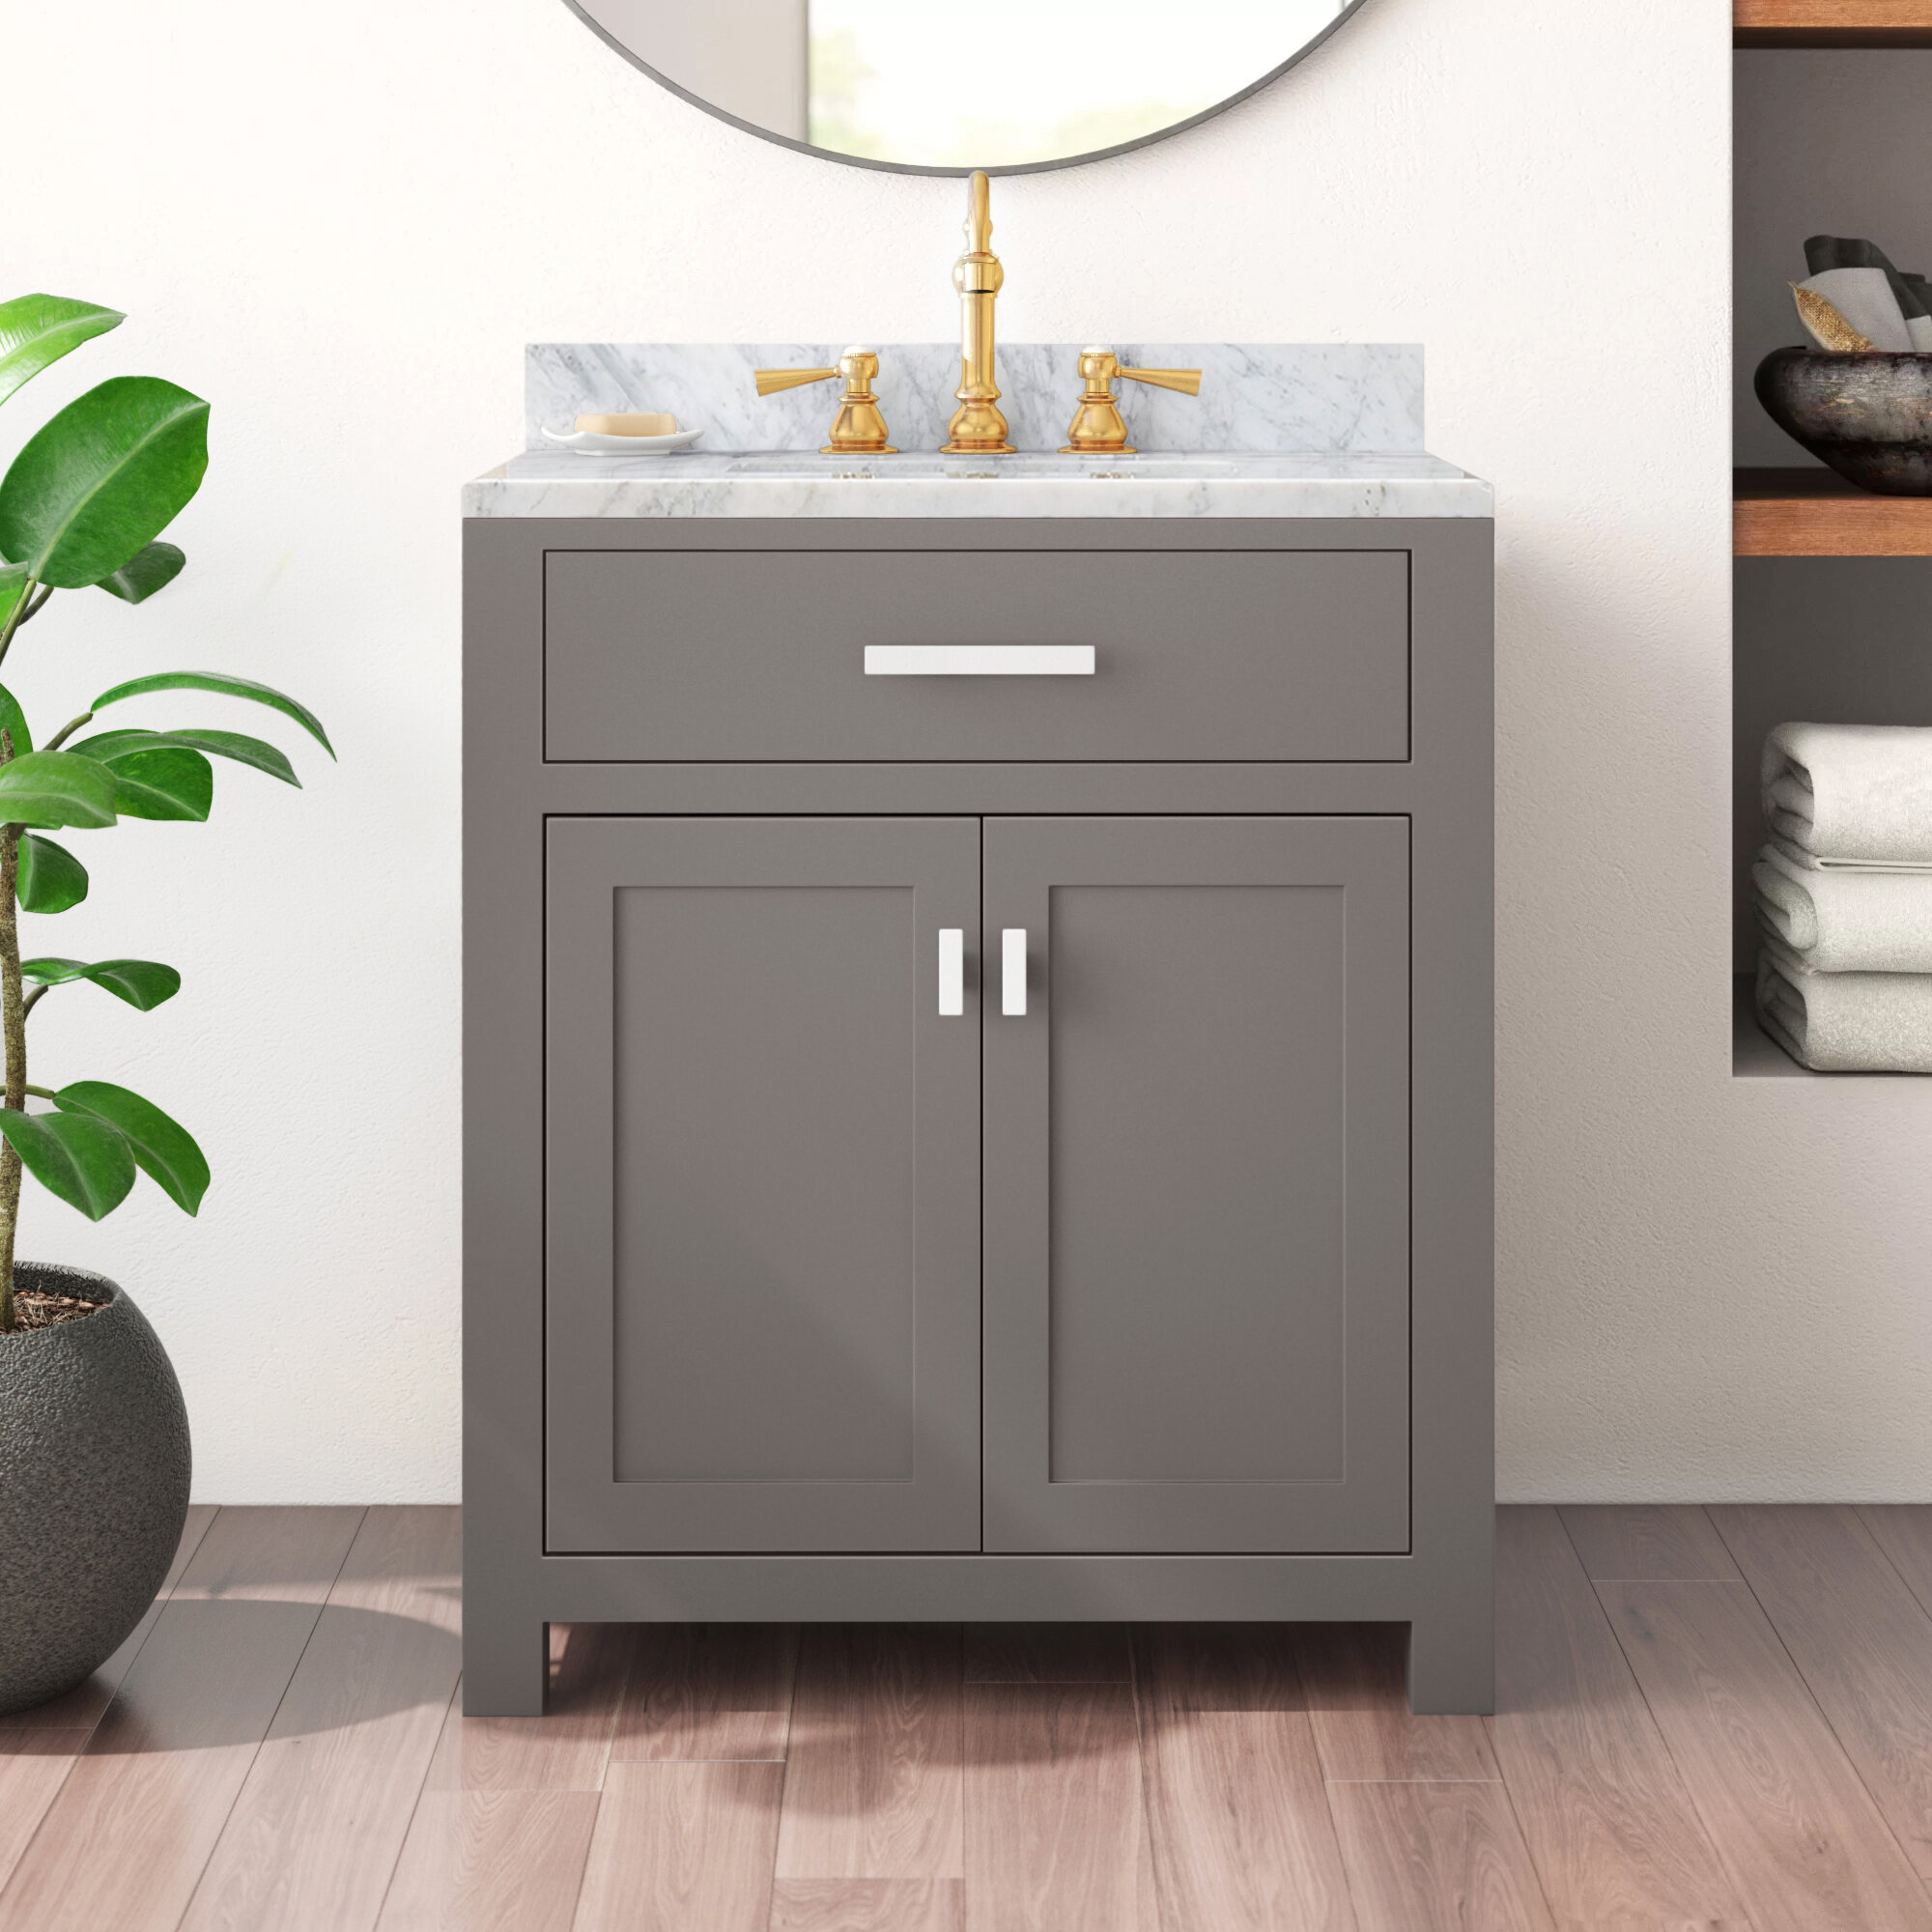 Gray Bathroom Vanities Free Shipping Over 35 Wayfair